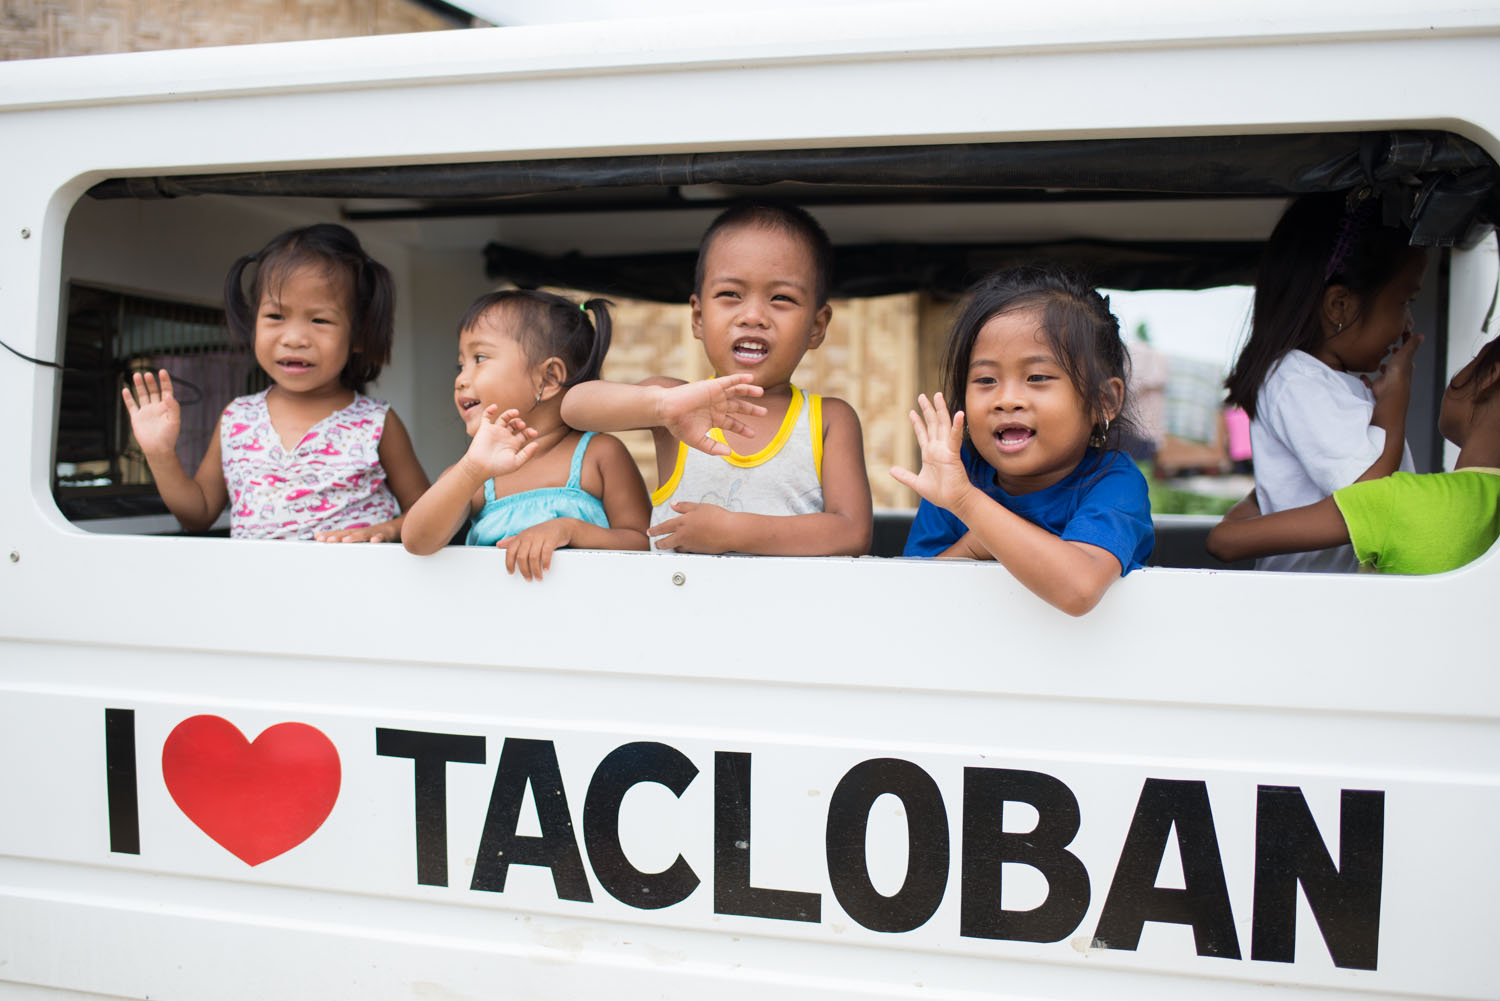 Children at a temporary housing location.